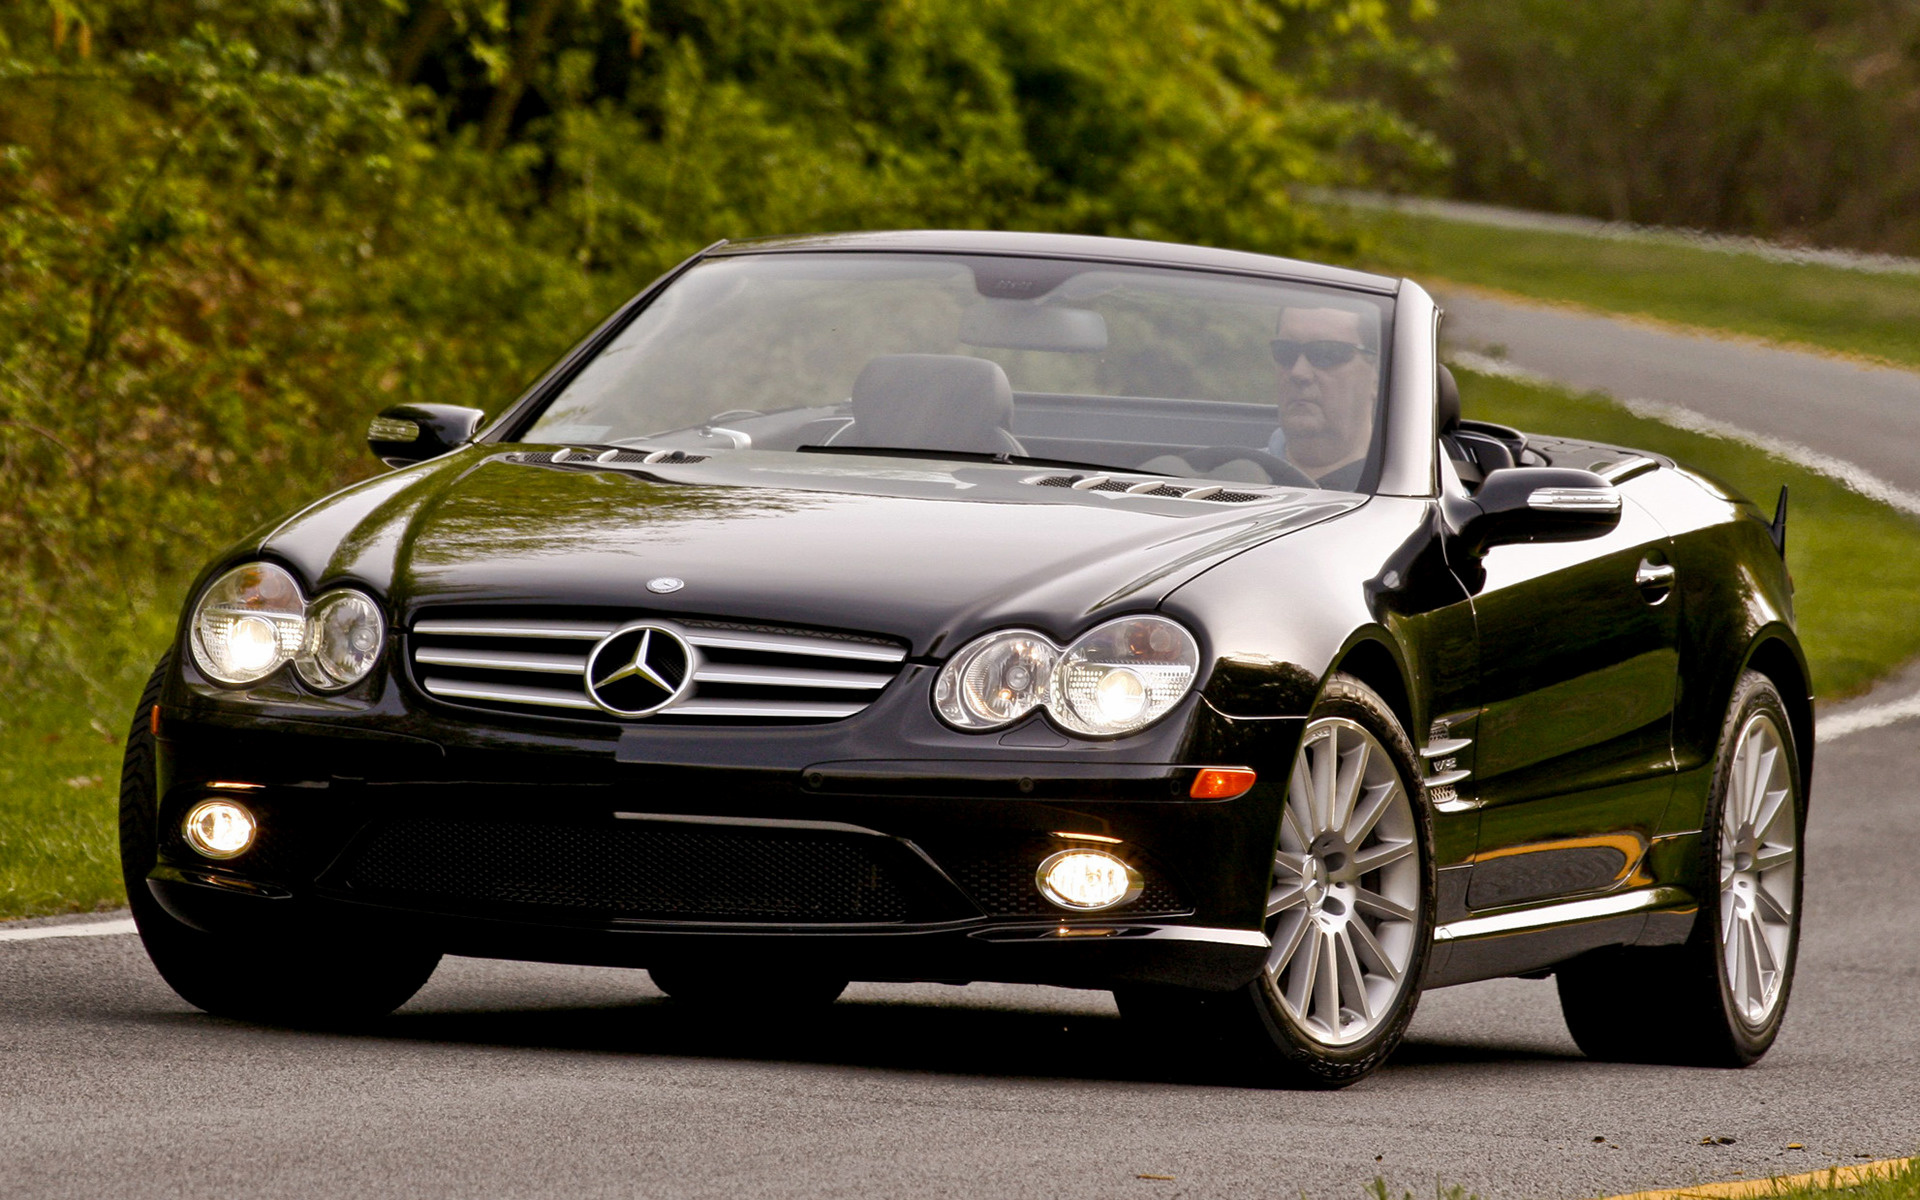 mercedes benz sl class amg styling 2006 us wallpapers. Black Bedroom Furniture Sets. Home Design Ideas